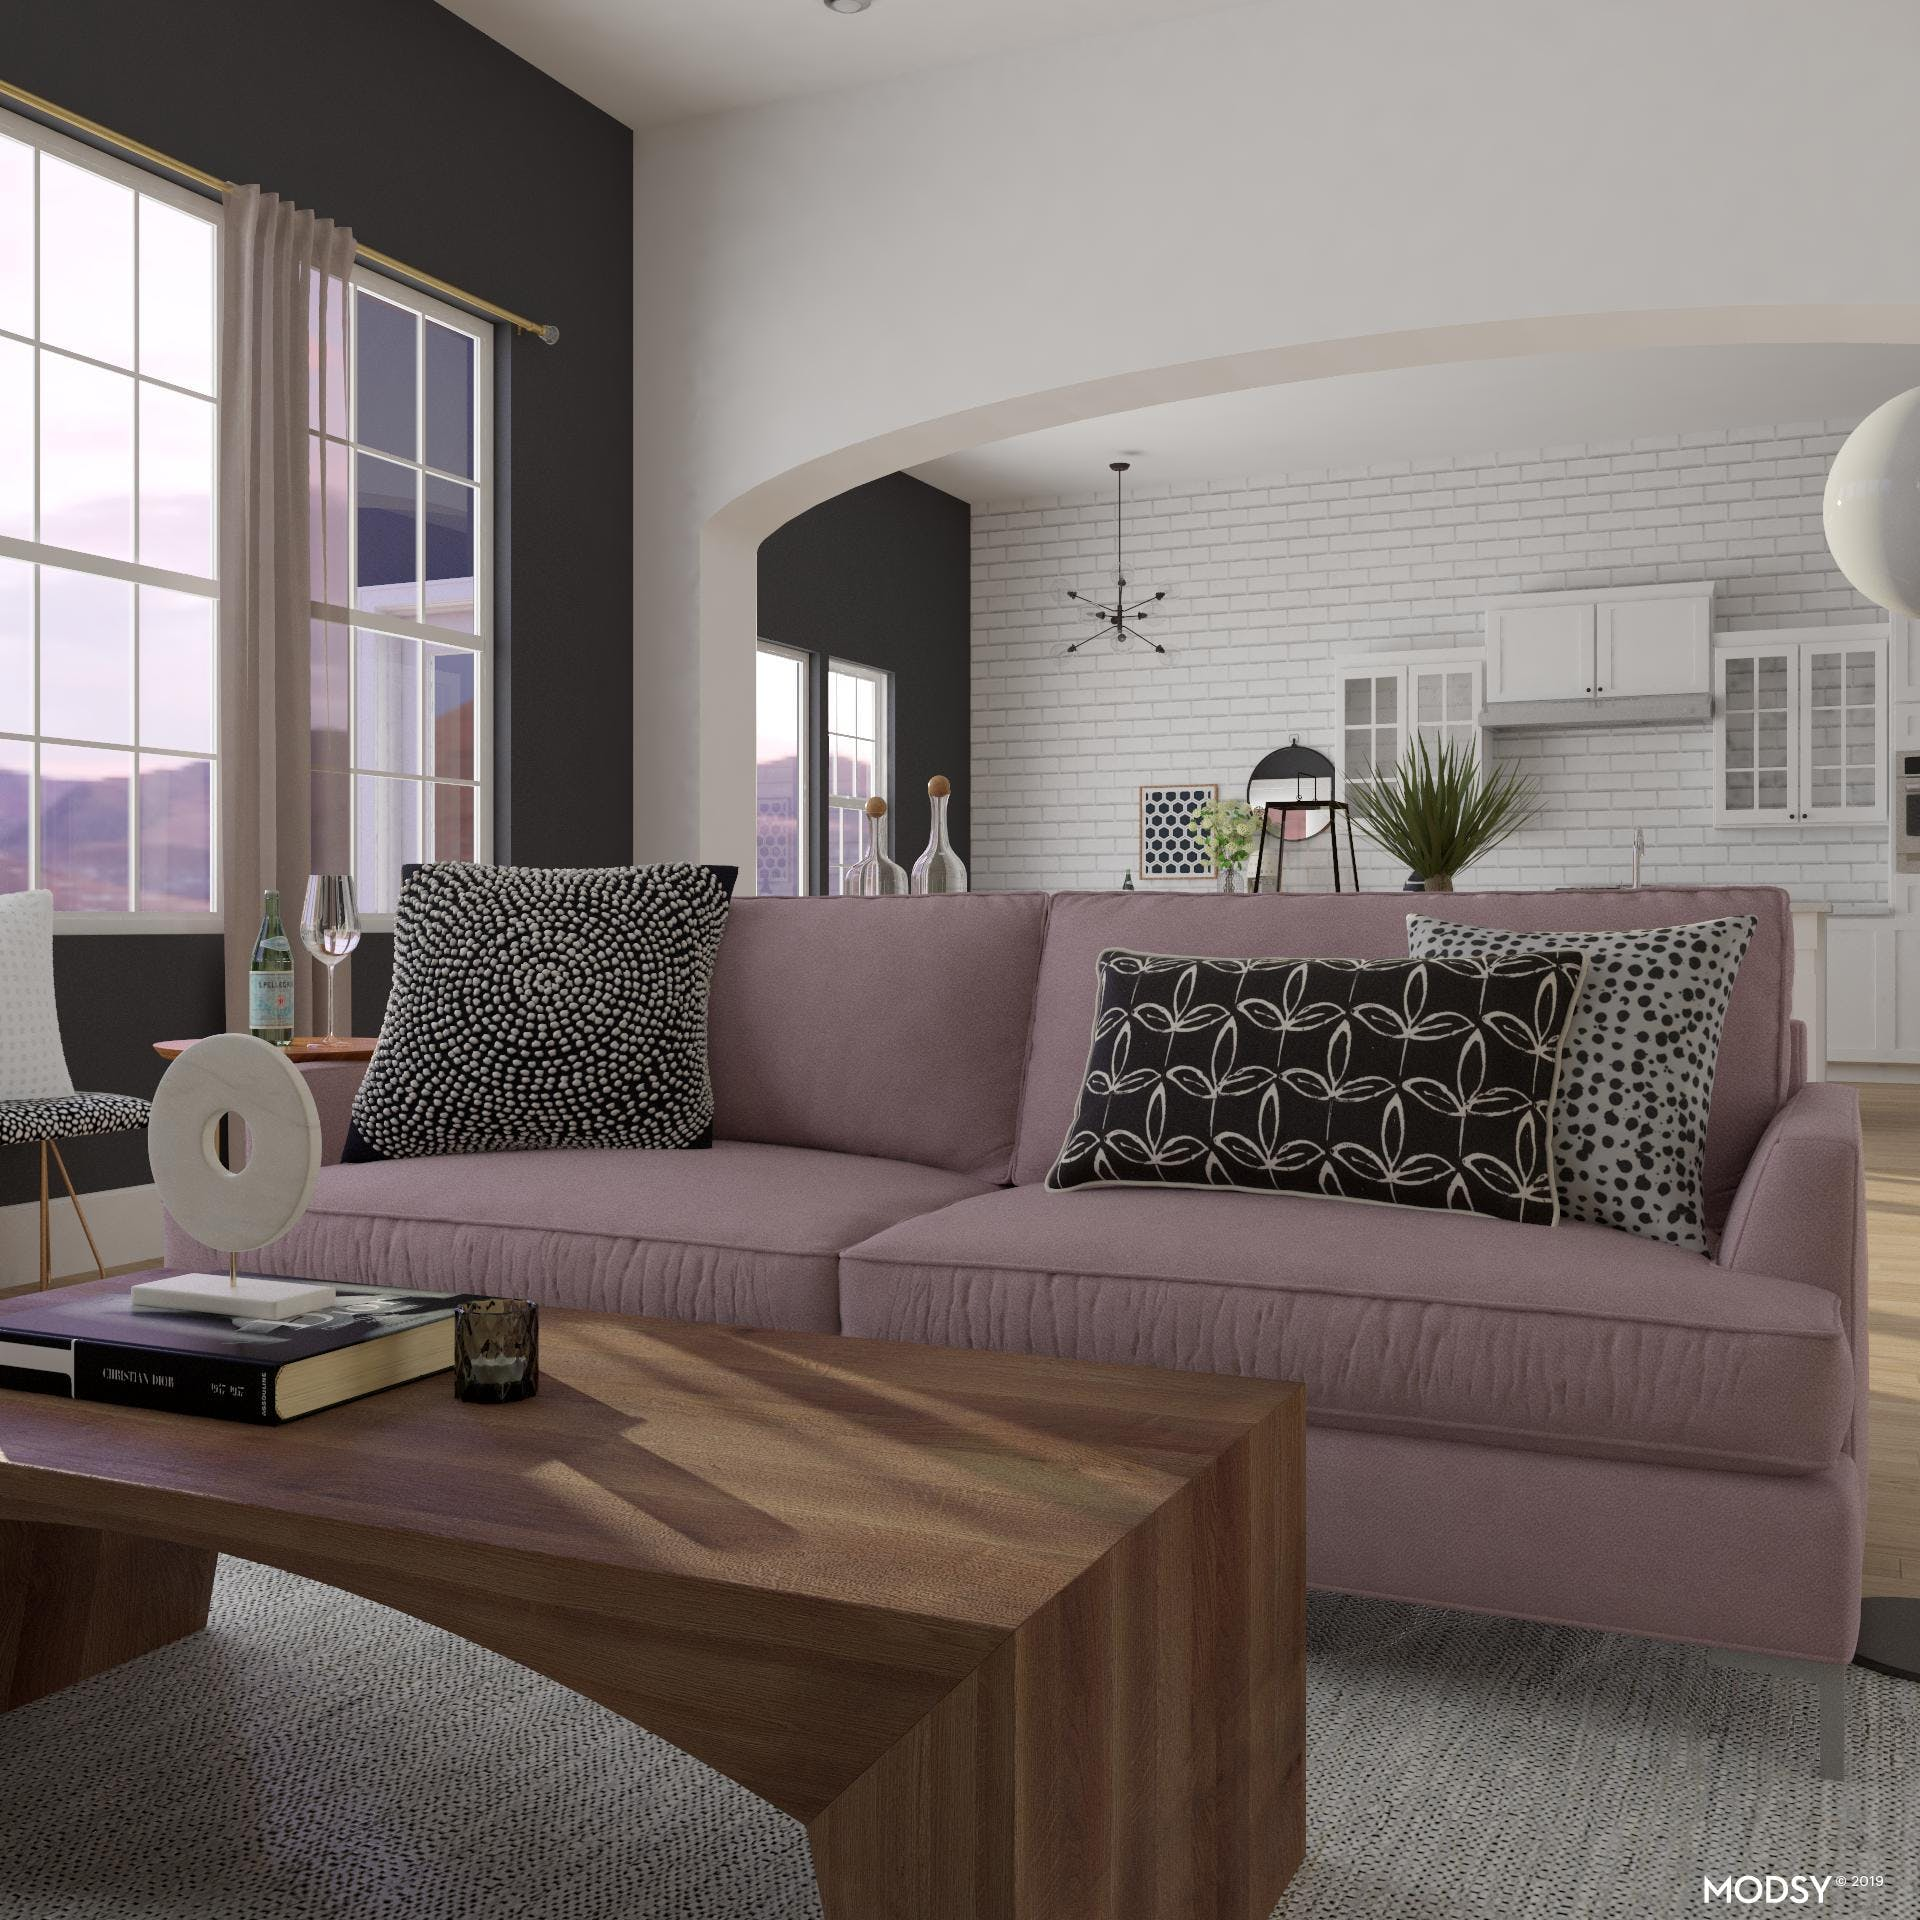 Mid-Century Living Room in Black, White and Blush